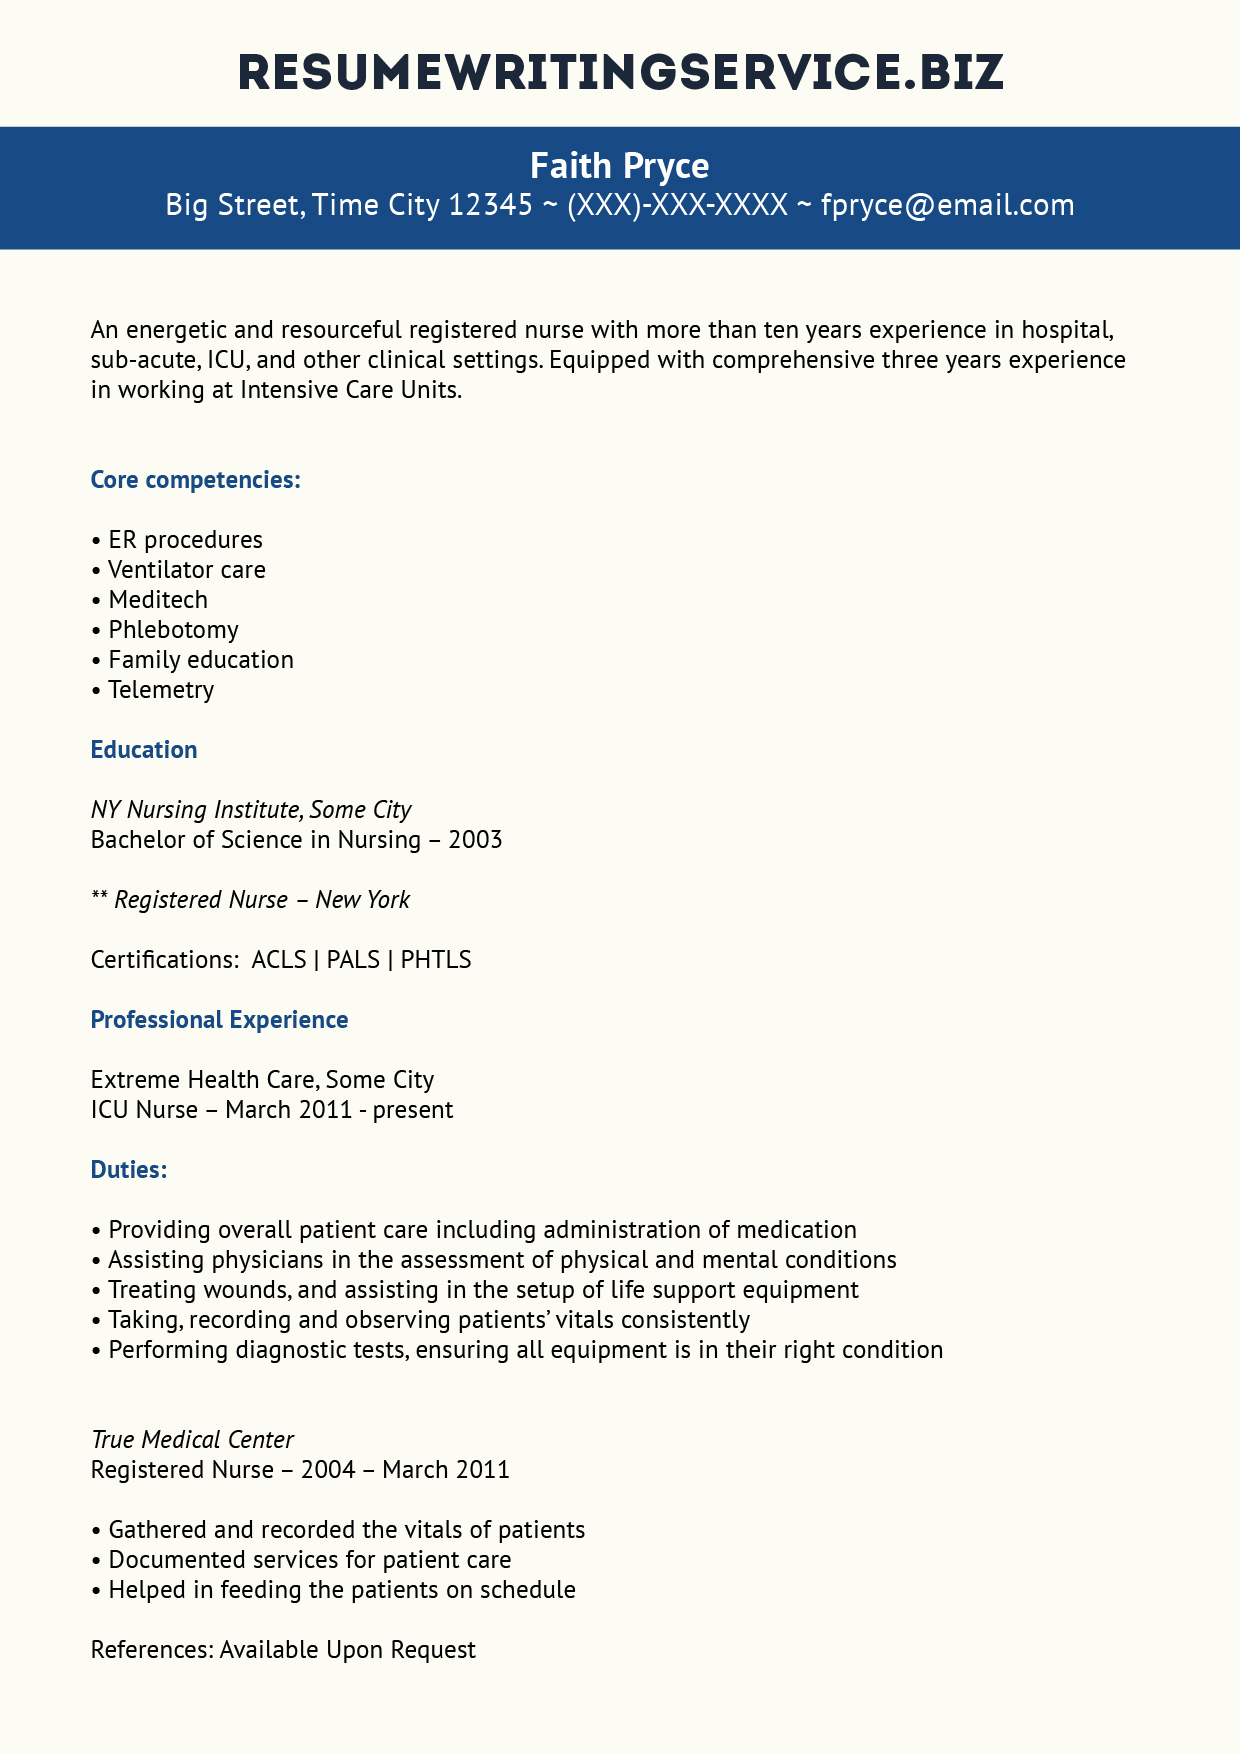 Remarkable ICU Nurse Resume Example Resume Writing Service